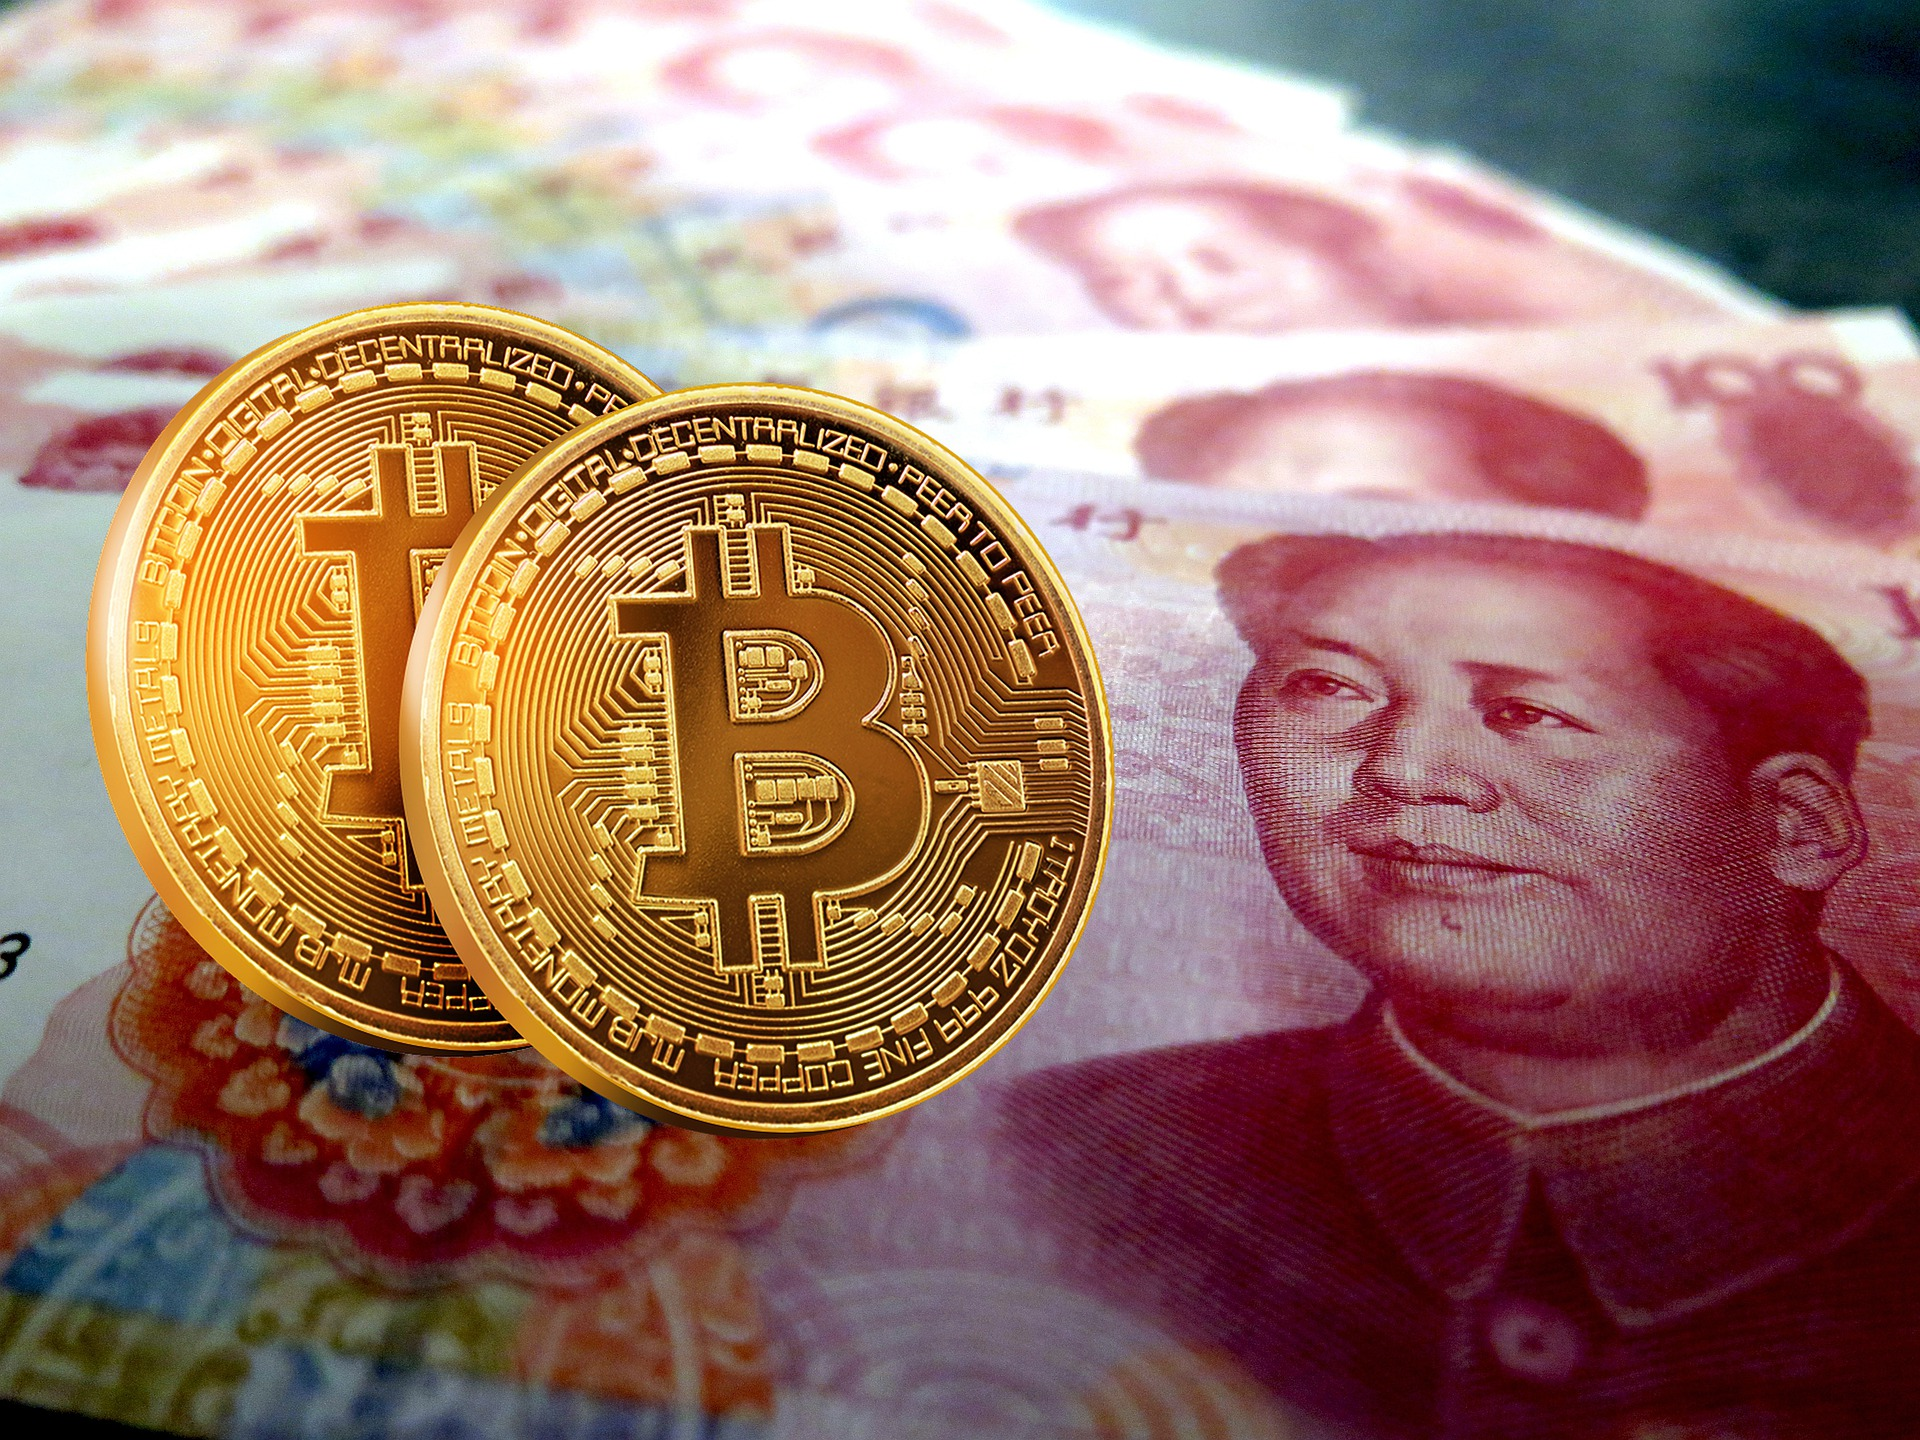 China's Oldest Crypto Exchange Shuts Down Bitcoin Business As Crackdowns Continue